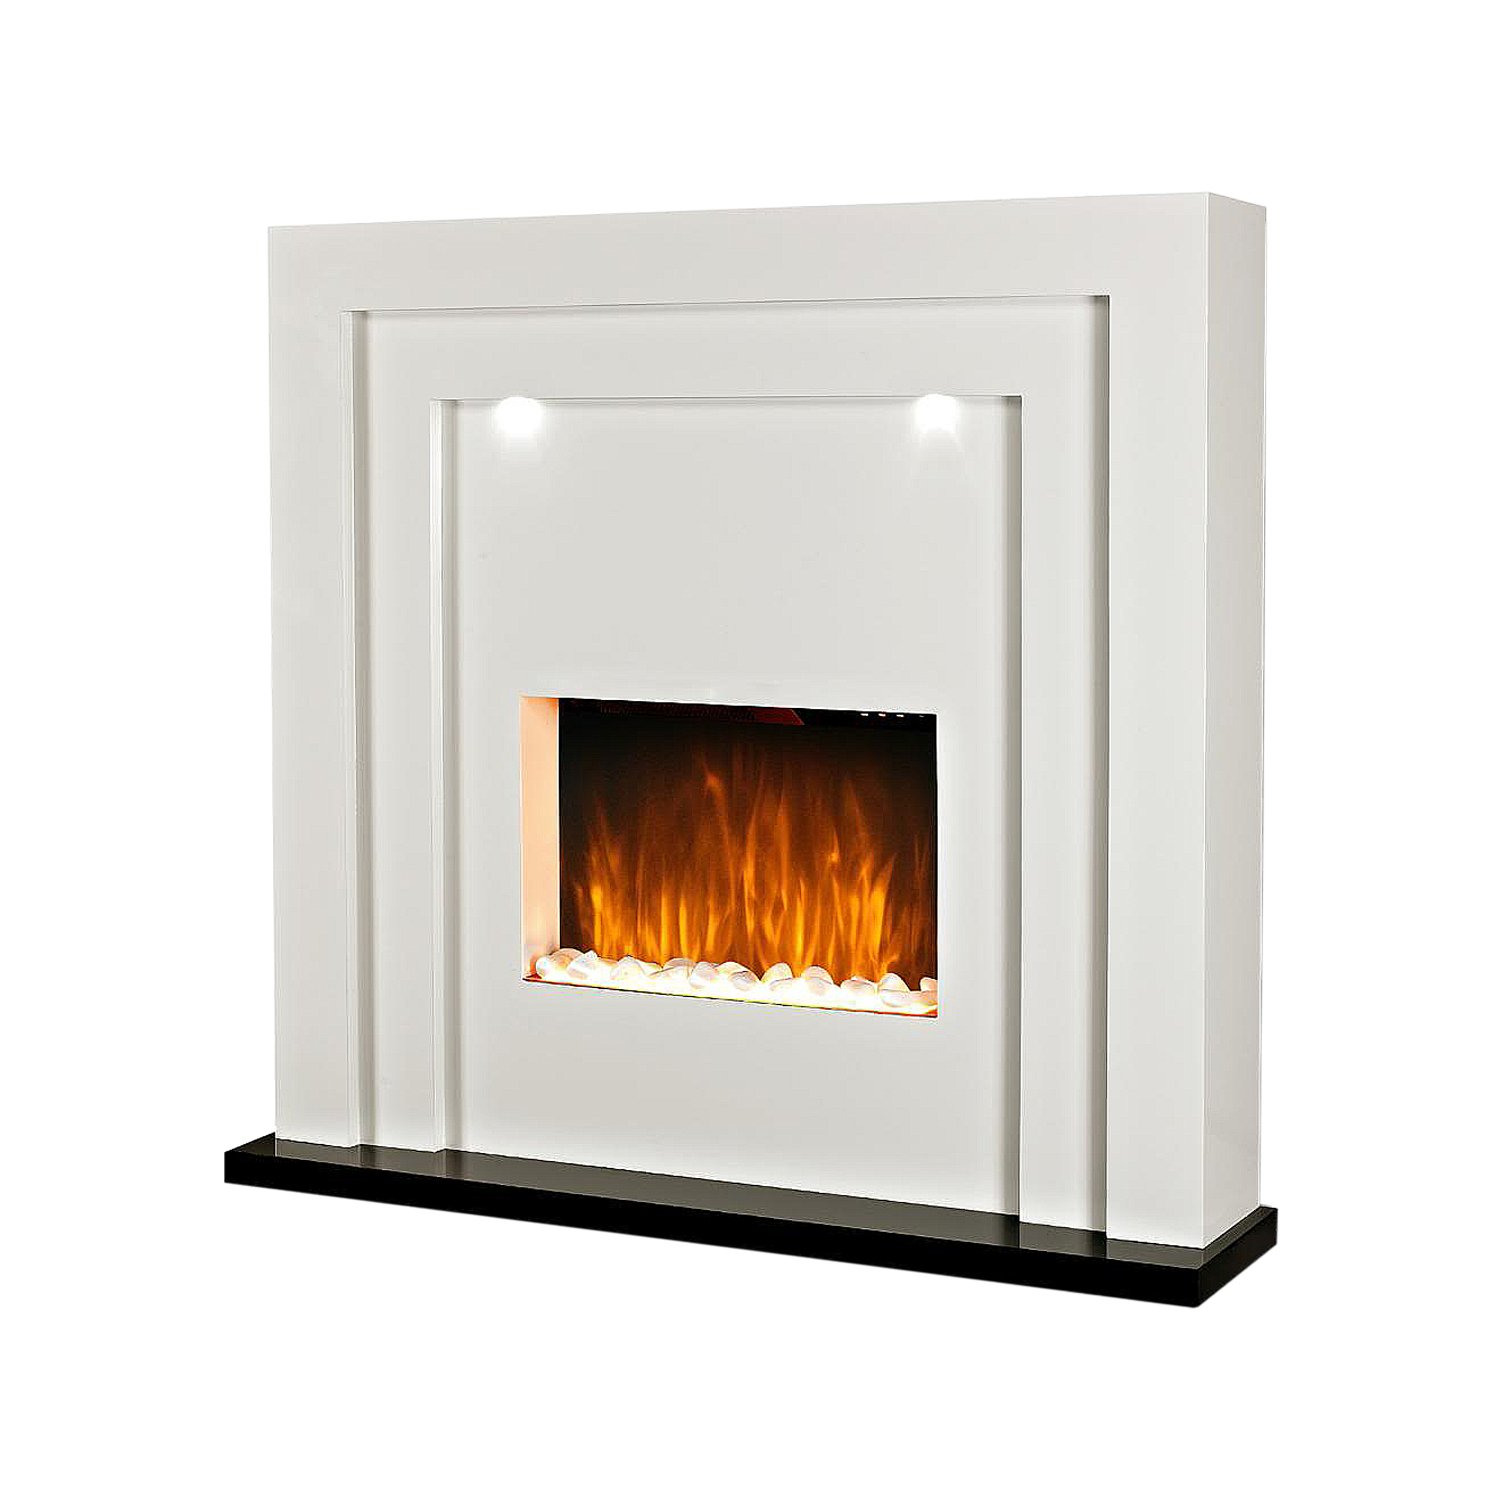 Magnificent Electric Fireplace Fire Surround Living Room Floor Standing Led Lights Mdf Inset Home Interior And Landscaping Ologienasavecom